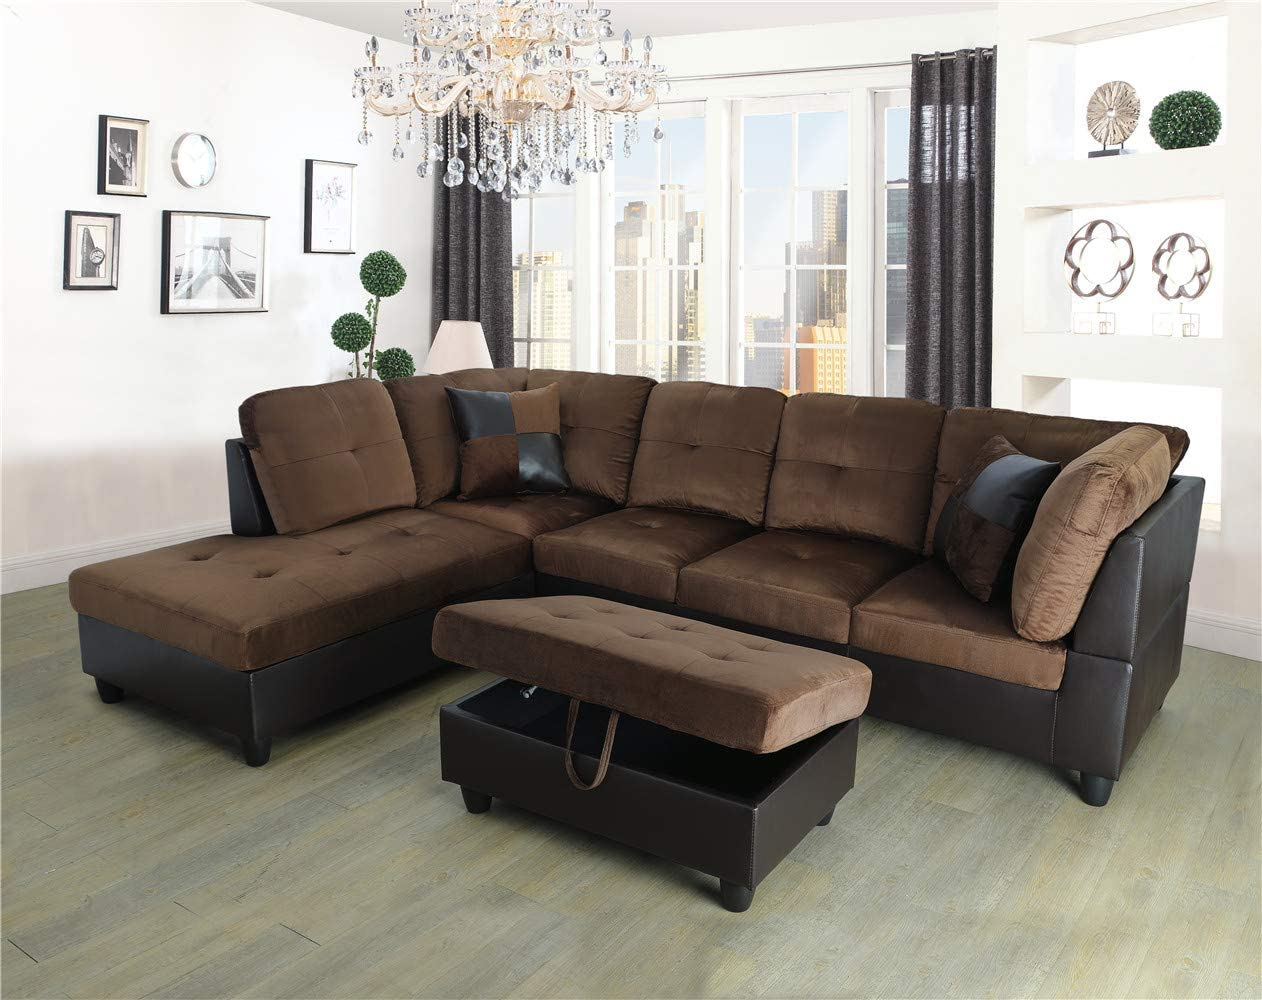 Ainehome 3 PCS Living Room Set, Sectional Sofa Set, Sectional Sofa in Home, with Storage Ottoman and Matching Pillows (Left Hand Facing, Chocolate)